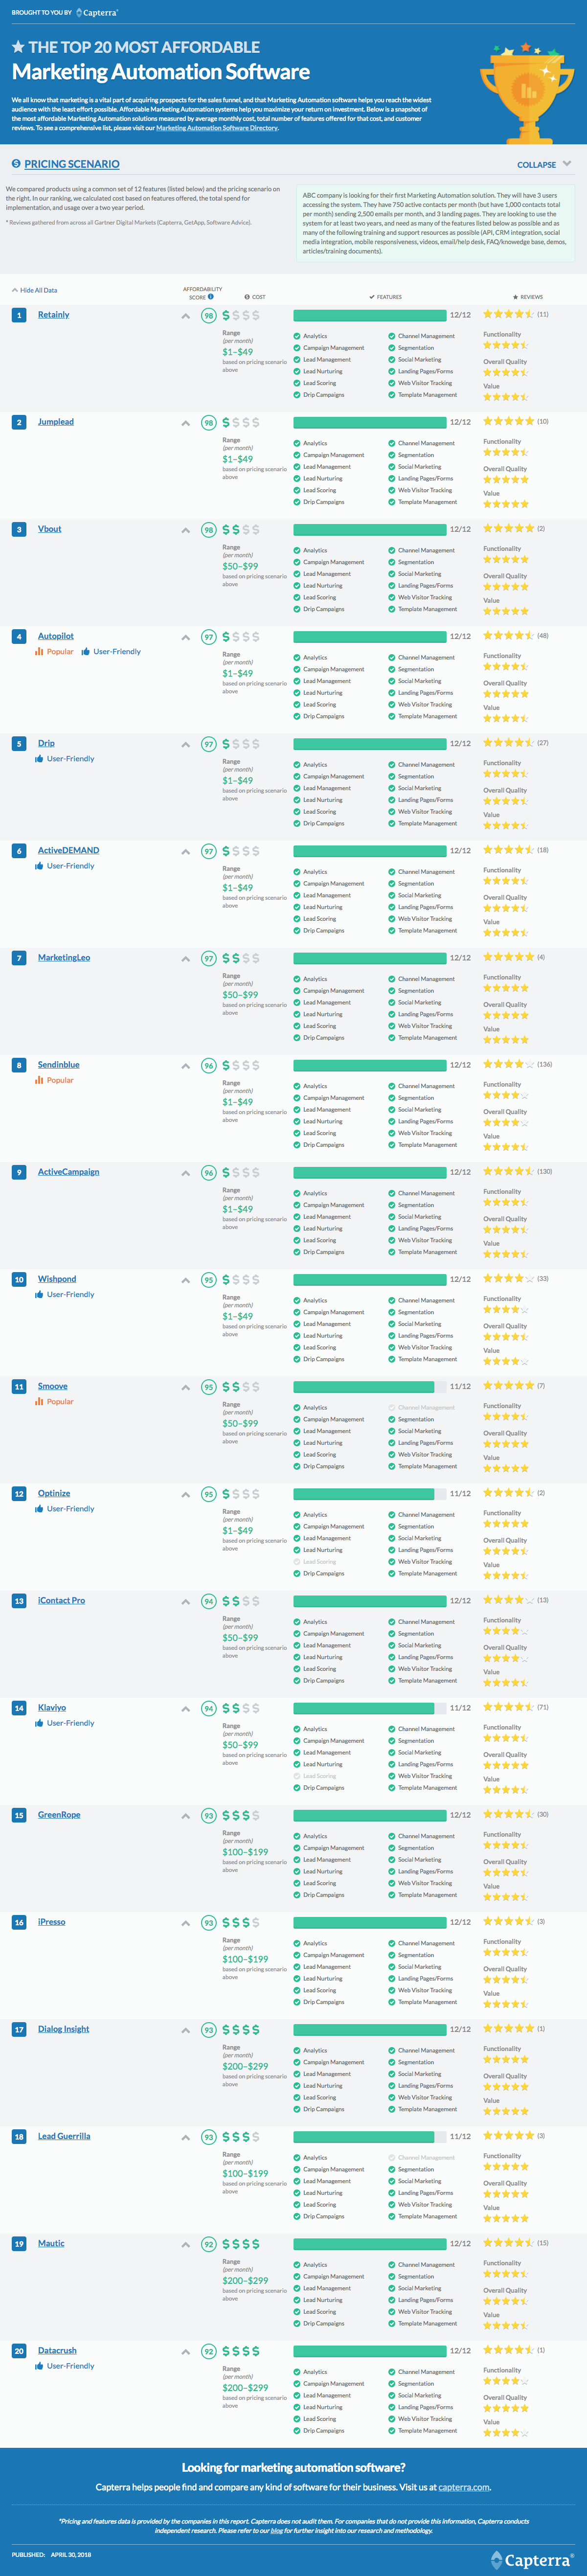 Top 20 Most Affordable Marketing Automation Software